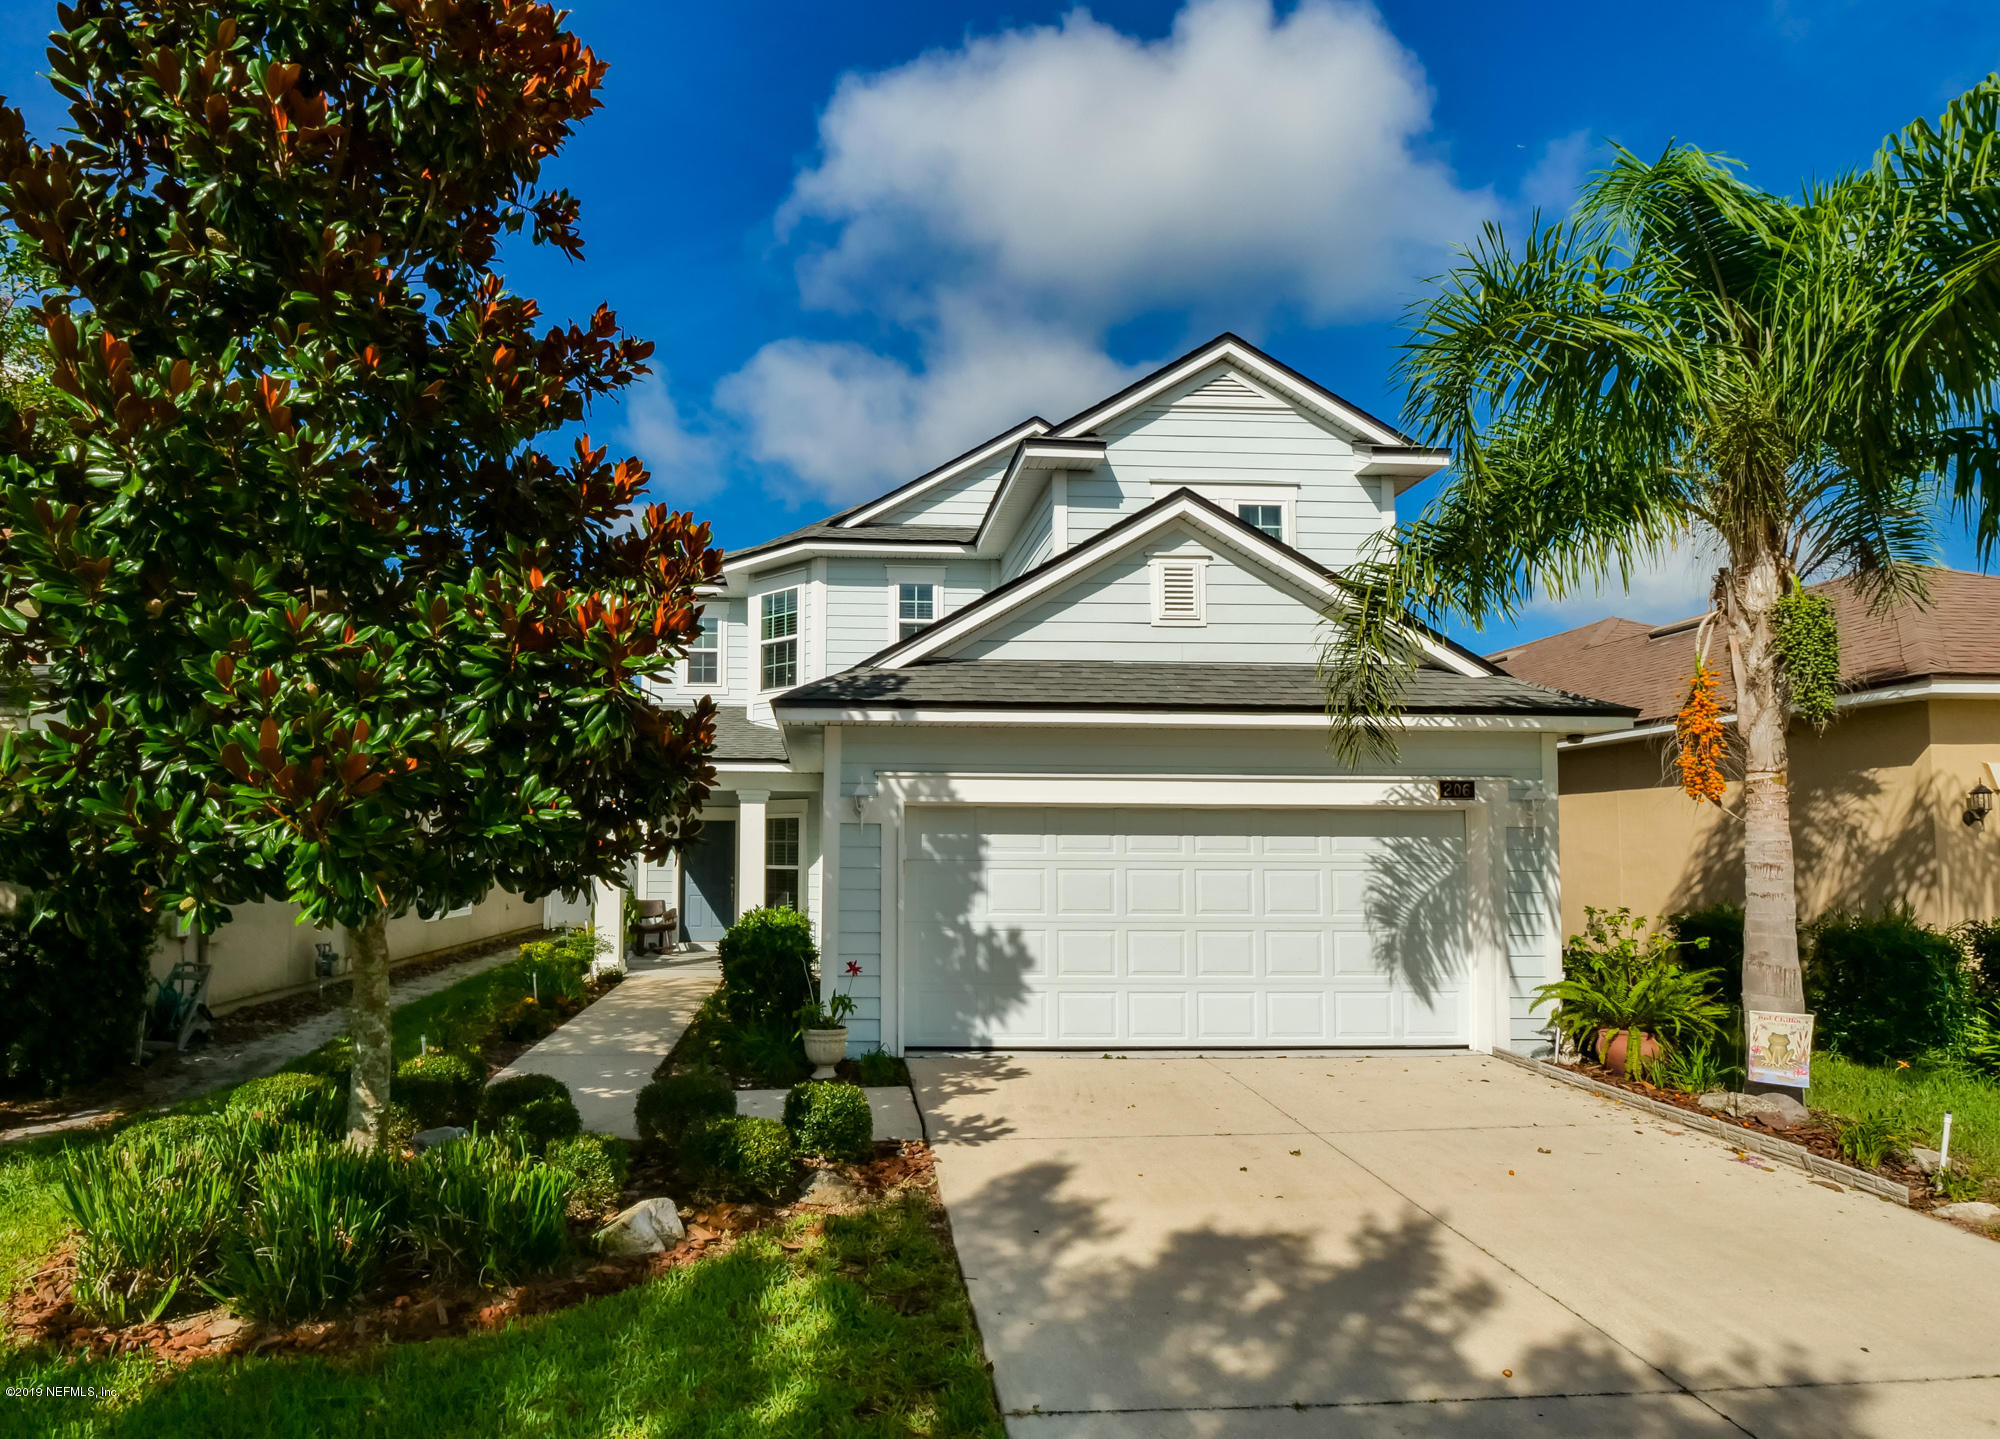 206 WOODLAND GREENS, PONTE VEDRA, FLORIDA 32081, 3 Bedrooms Bedrooms, ,2 BathroomsBathrooms,Residential - single family,For sale,WOODLAND GREENS,1005439